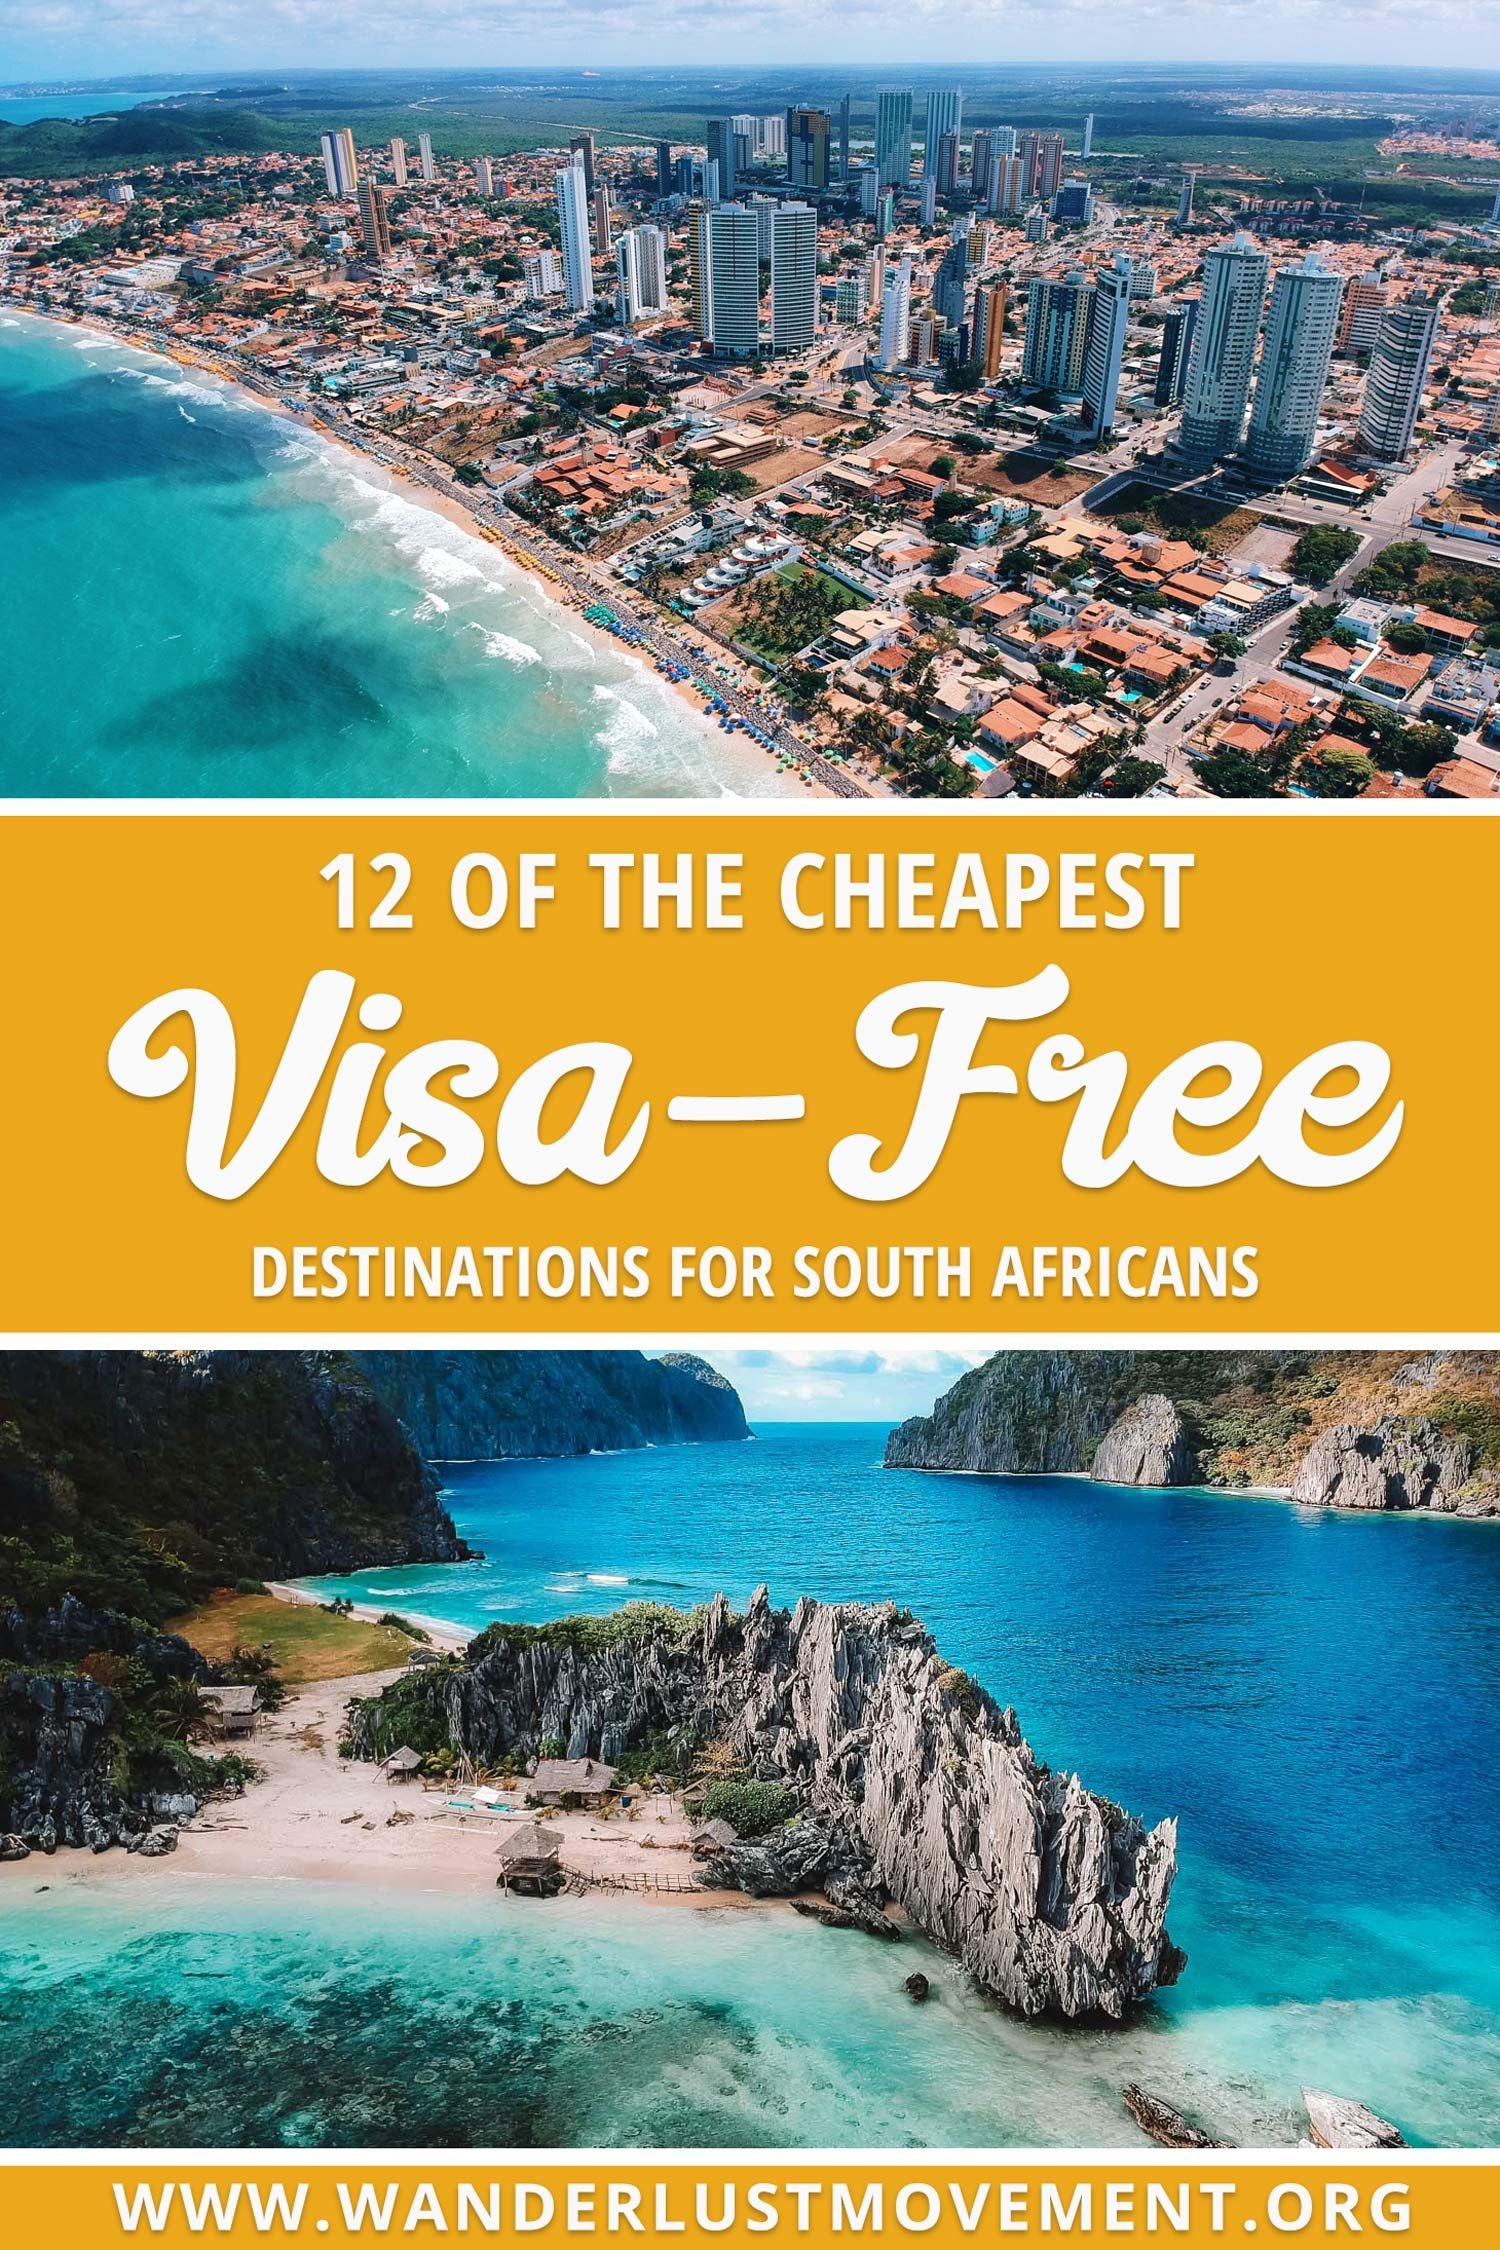 The Cheapest Visa-Free Destinations for South Africans